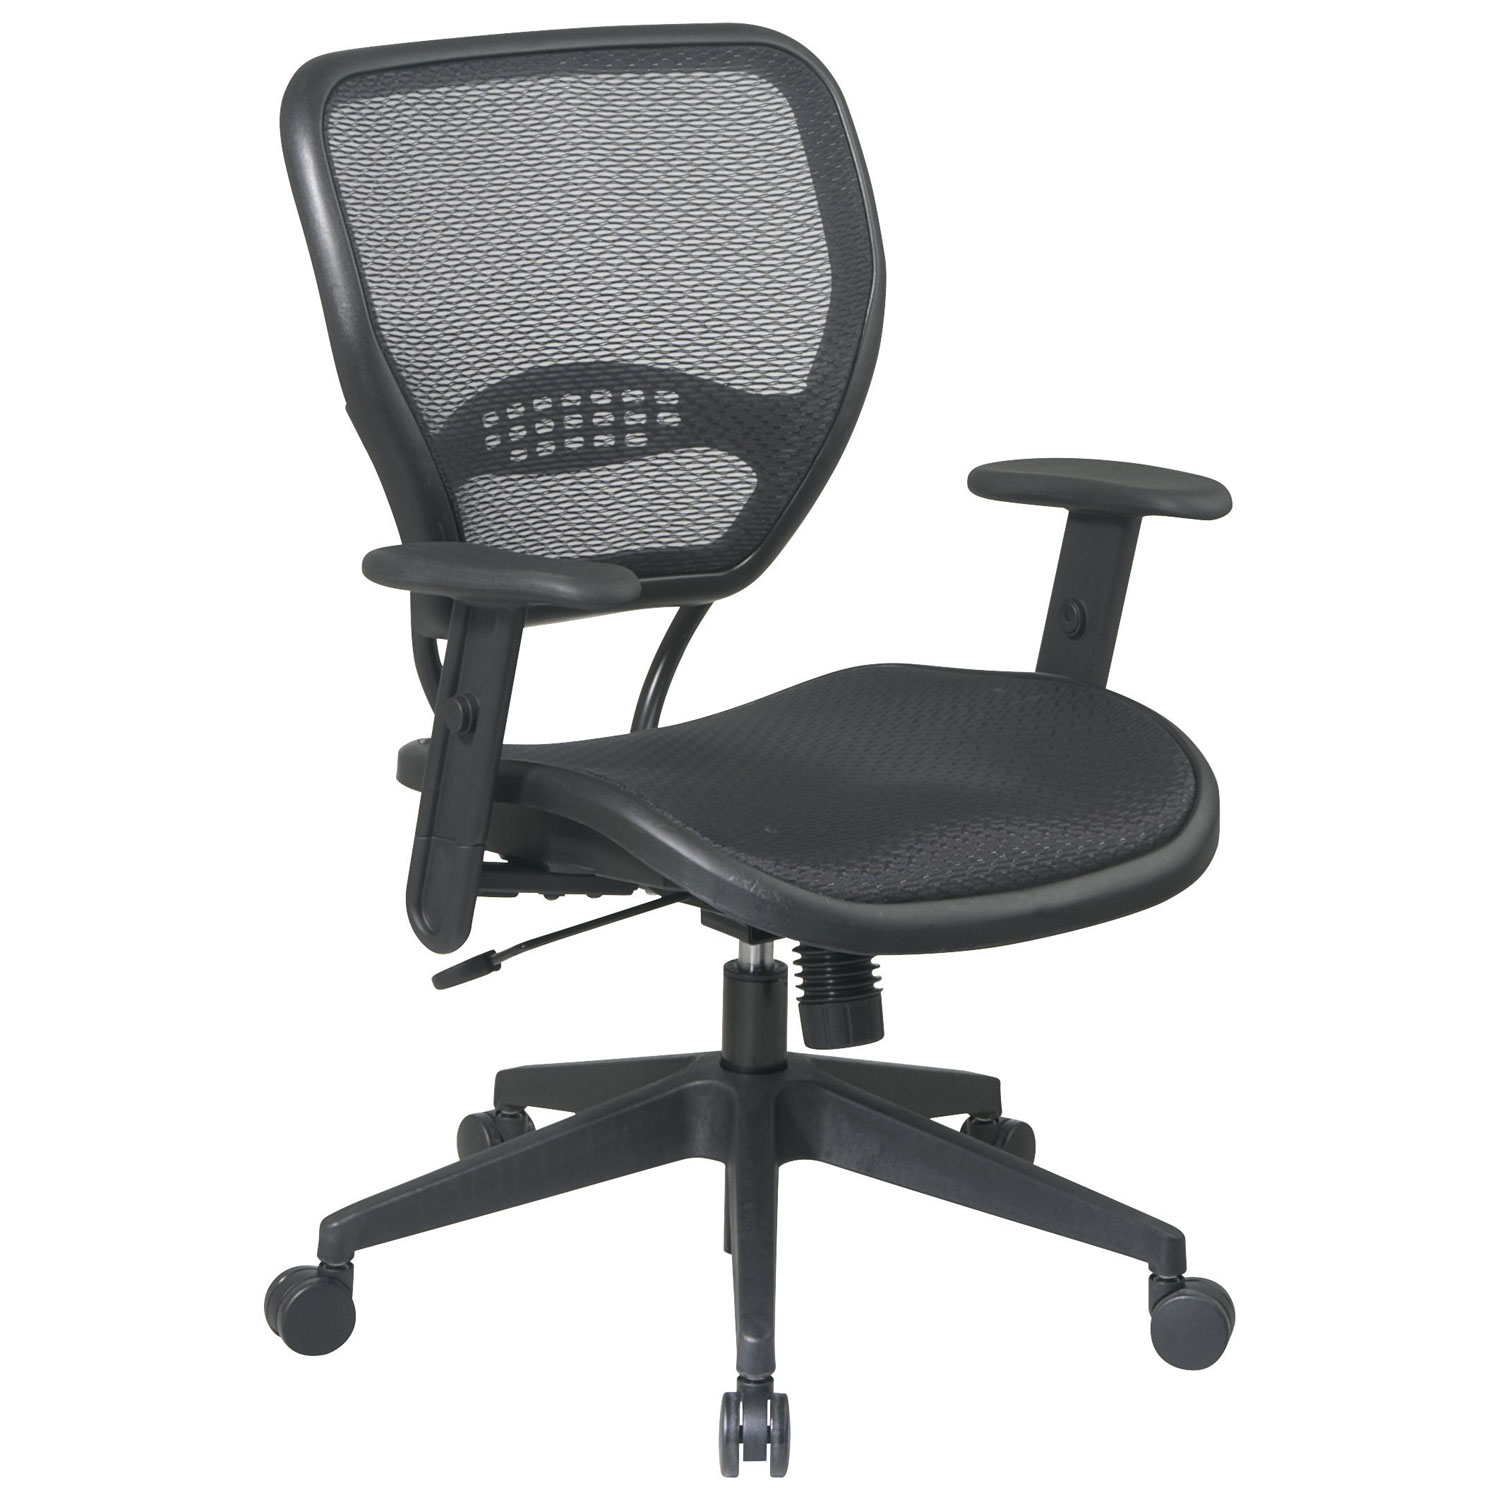 Office Star Professional Air Grid Deluxe Task Chair space seating airgrid office chair - black : office chairs - best